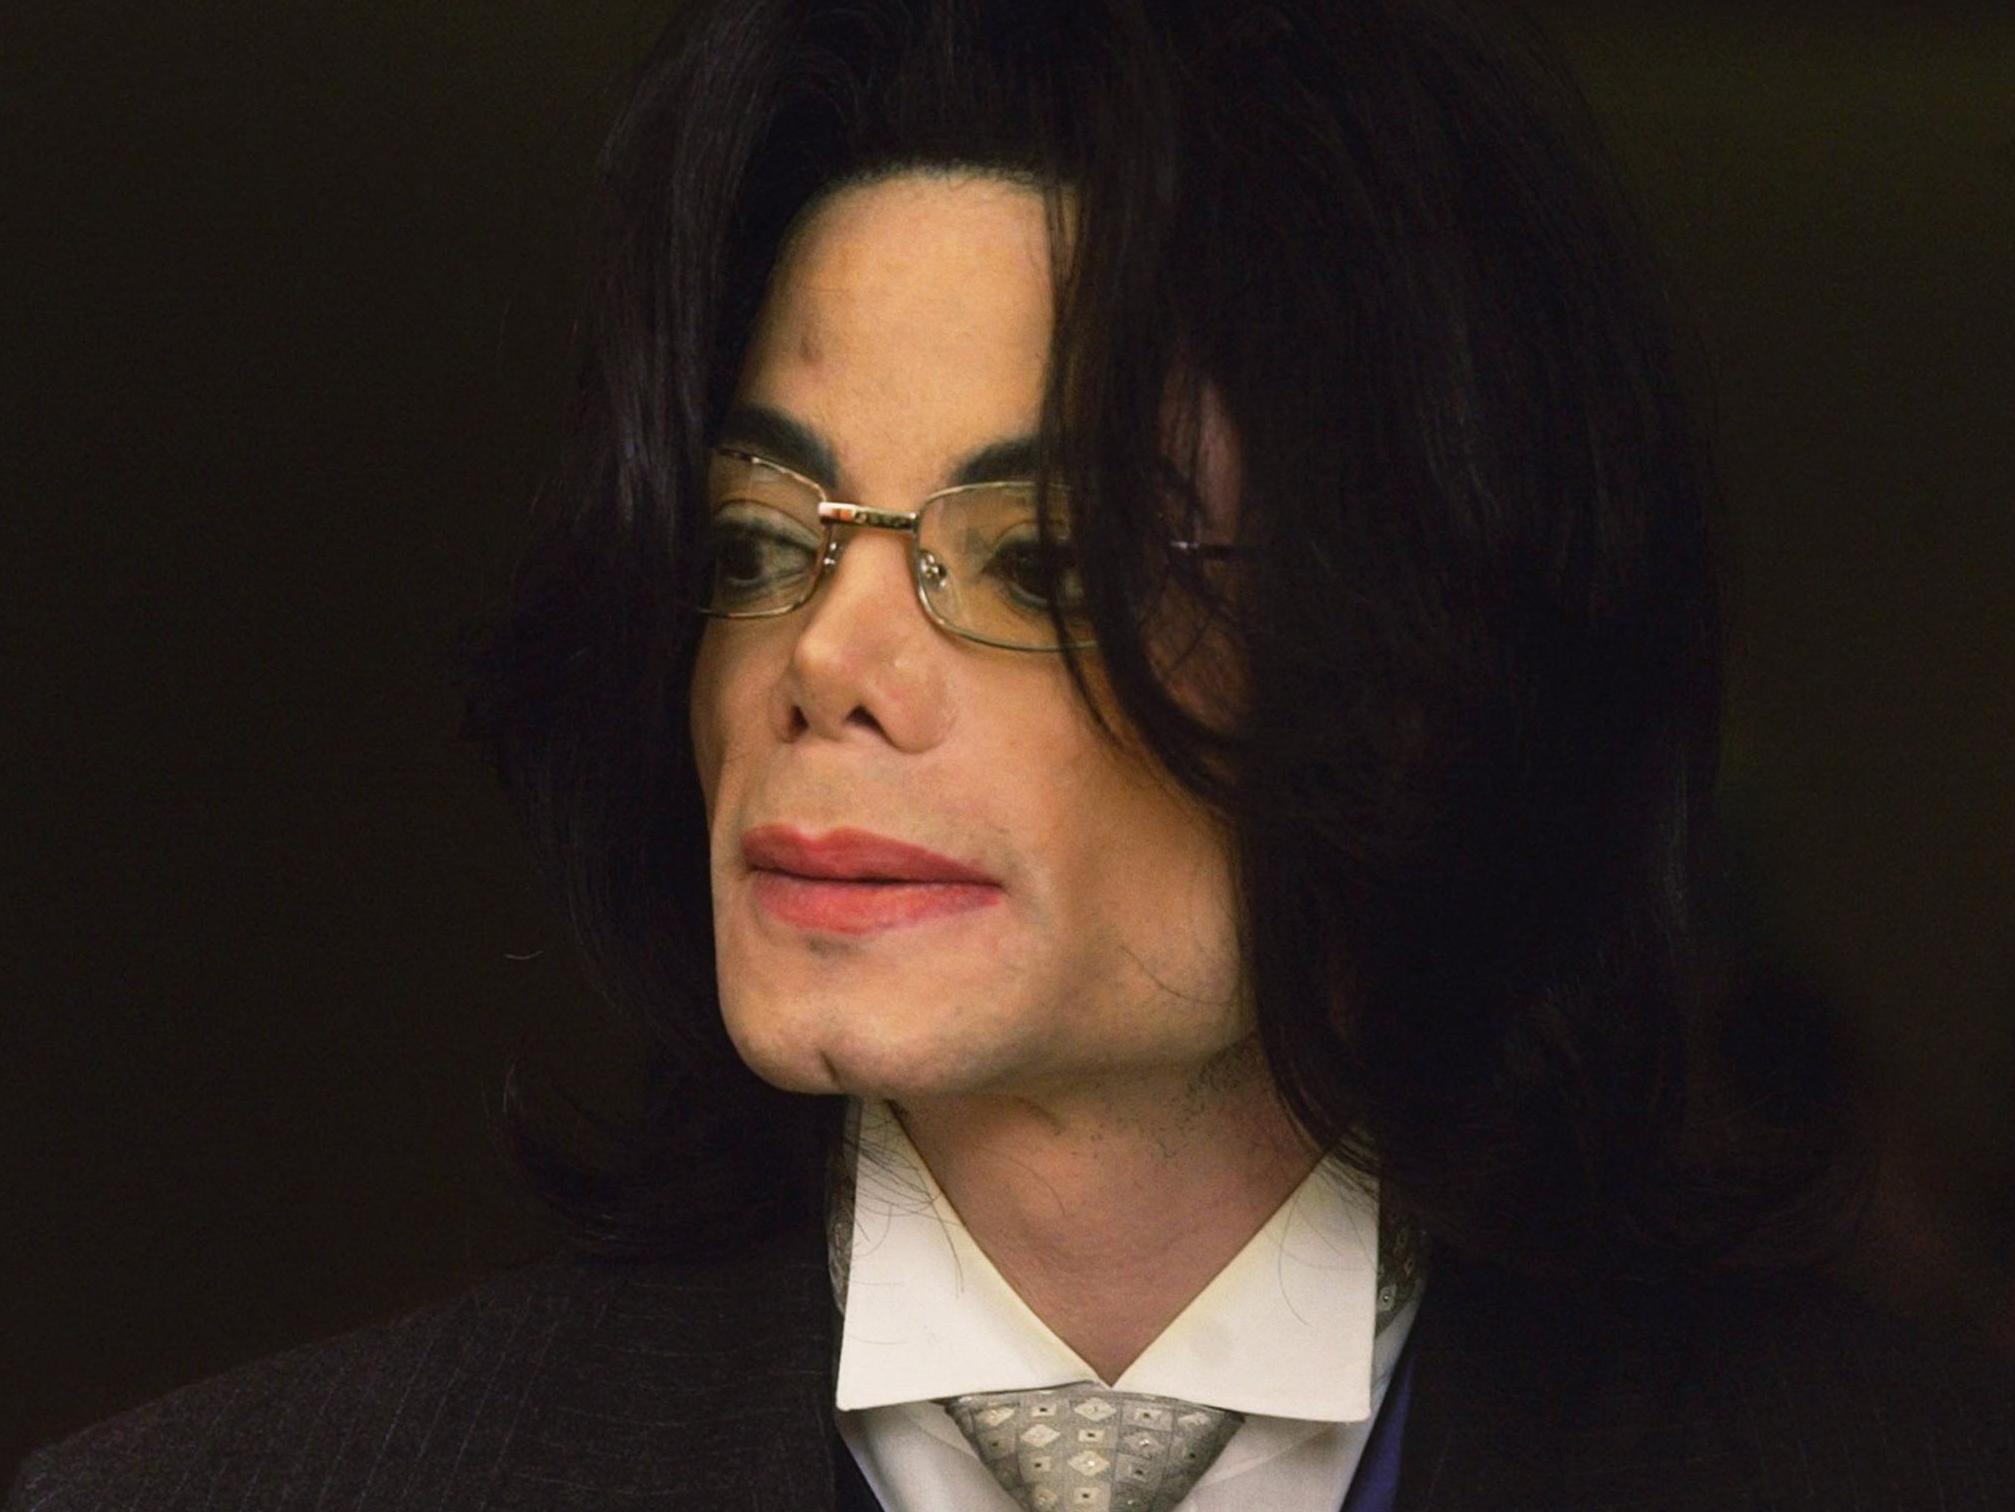 Michael Jackson - latest news, breaking stories and comment - The